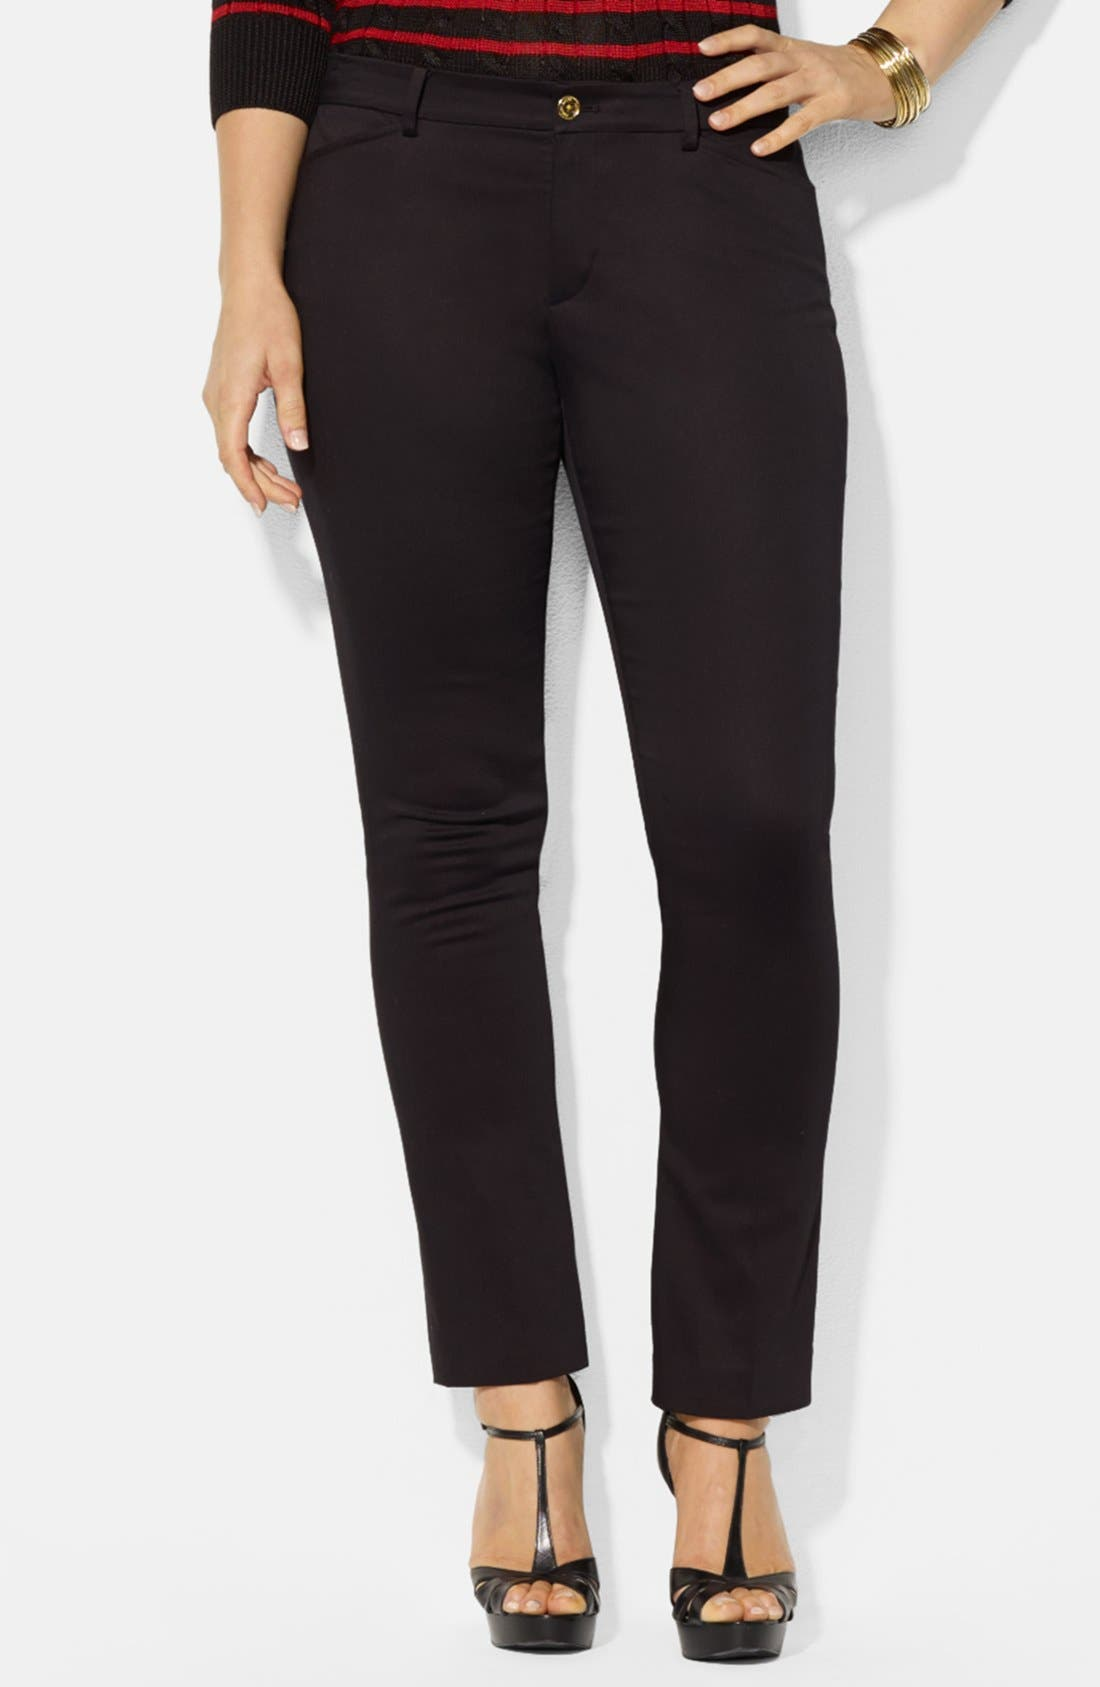 Main Image - Lauren Ralph Lauren Slim Ankle Pants (Plus Size)